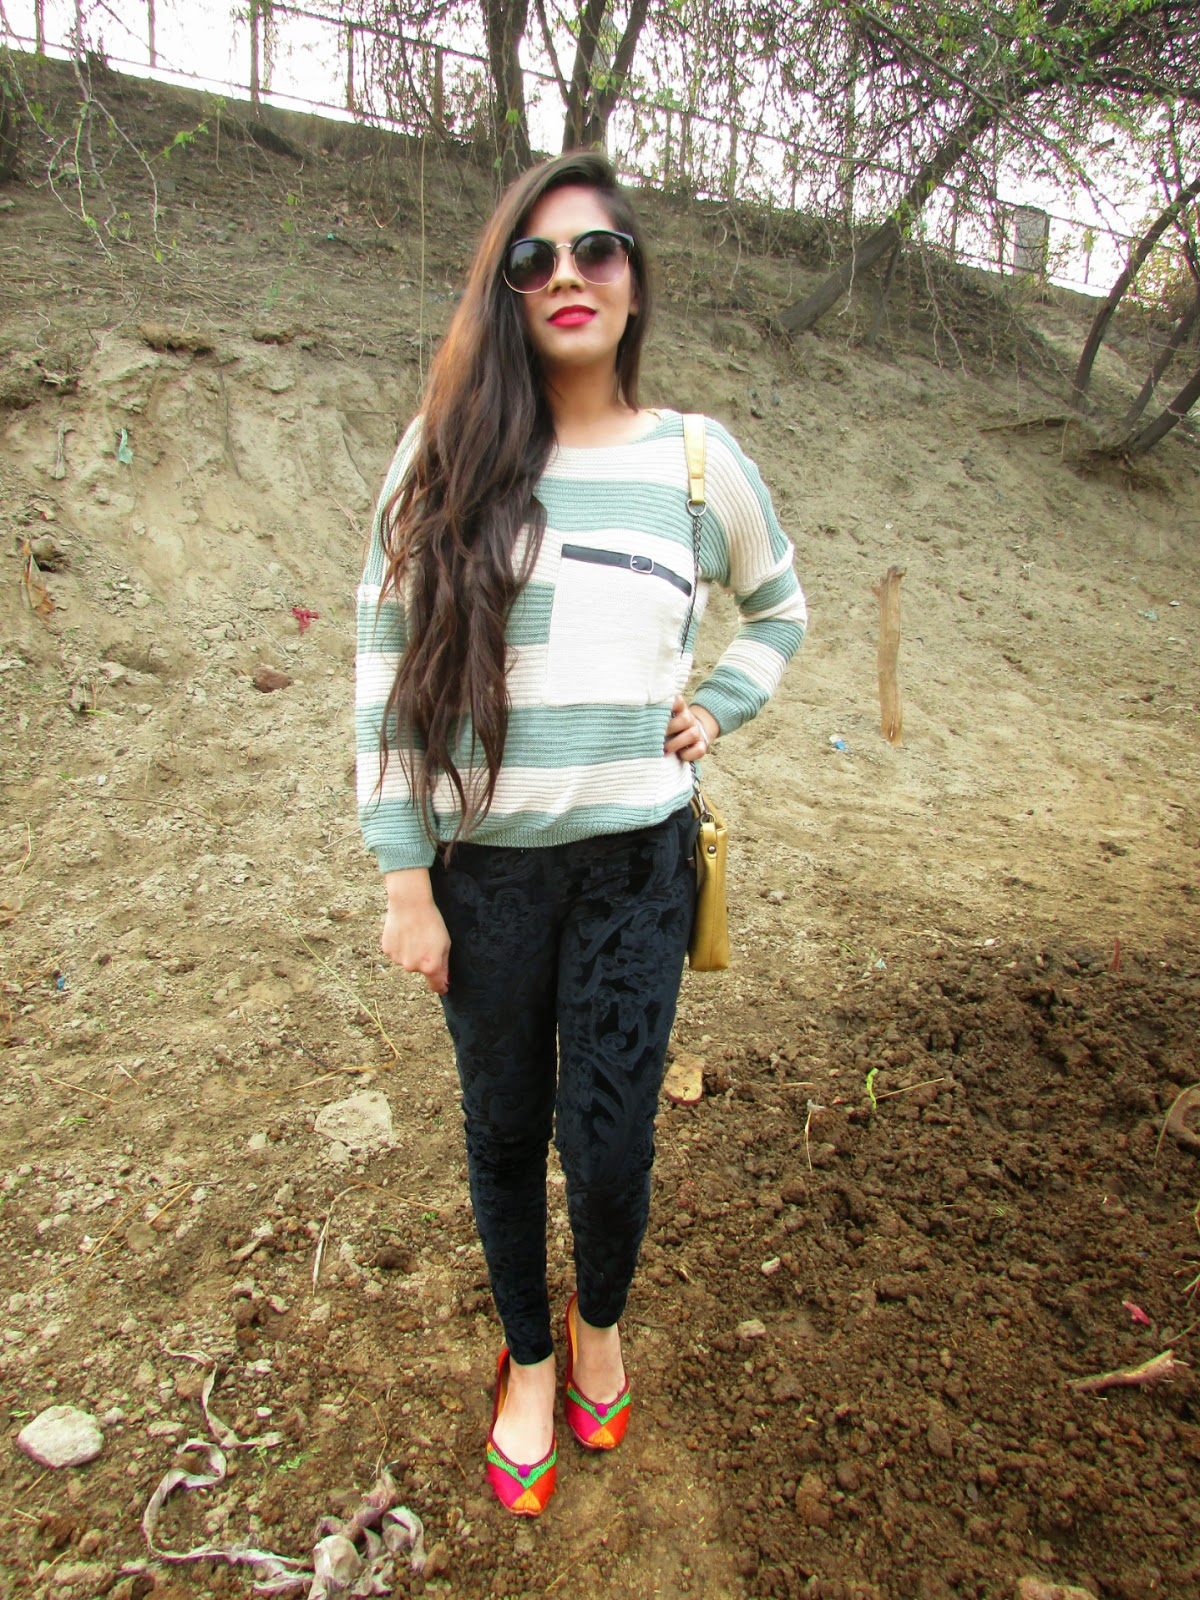 velvet leggings, how to style leggings, how to style velvet leggings, black velvet leggings, black leggings, fashion, winter trends 2015, black floral print leggings, Floral Detailed Skinny Leggings, cheap sunglasses india, cheap vintage sunglasses, fashion, OASAP, Sunglasses, vintage round sunglasses, vintage sunglasses,indian dahion bloggger, Statement necklace, necklace, statement necklaces, big necklace, heavy necklaces , gold necklace, silver necklace, silver statement necklace, gold statement necklace, studded statement necklace , studded necklace, stone studded necklace, stone necklace, stove studded statement necklace, stone statement necklace, stone studded gold statement necklace, stone studded silver statement necklace, black stone necklace, black stone studded statement necklace, black stone necklace, black stone statement necklace, neon statement necklace, neon stone statement necklace, black and silver necklace, black and gold necklace, blank and silver statement necklace, black and gold statement necklace, silver jewellery, gold jewellery, stove jewellery, stone studded jewellery, imitation jewellery, artificial jewellery, junk jewellery, cheap jewellery ,oasap Statement necklace, oasap necklace, oasap statement necklaces,oasap big necklace, oasap heavy necklaces , oasap gold necklace, oasap silver necklace, oasap silver statement necklace,oasap gold statement necklace, oasap studded statement necklace , oasap studded necklace, oasap stone studded necklace, oasap stone necklace, oasap stove studded statement necklace, oasap stone statement necklace, oasap stone studded gold statement necklace, oasap stone studded silver statement necklace, oasap black stone necklace, oasap black stone studded statement necklace, oasap black stone necklace, oasap black stone statement necklace, oasap neon statement necklace, oasap neon stone statement necklace, oasap black and silver necklace, oasap black and gold necklace, oasap black  and silver statement necklace, oasap black and gold statement necklace, silver jewellery, oasap gold jewellery, oasap stove jewellery, oasap stone studded jewellery, oasap imitation jewellery, oasap artificial jewellery, oasap junk jewellery, oasap cheap jewellery ,Cheap Statement necklace, Cheap necklace, Cheap statement necklaces,Cheap big necklace, Cheap heavy necklaces , Cheap gold necklace, Cheap silver necklace, Cheap silver statement necklace,Cheap gold statement necklace, Cheap studded statement necklace , Cheap studded necklace, Cheap stone studded necklace, Cheap stone necklace, Cheap stove studded statement necklace, Cheap stone statement necklace, Cheap stone studded gold statement necklace, Cheap stone studded silver statement necklace, Cheap black stone necklace, Cheap black stone studded statement necklace, Cheap black stone necklace, Cheap black stone statement necklace, Cheap neon statement necklace, Cheap neon stone statement necklace, Cheap black and silver necklace, Cheap black and gold necklace, Cheap black  and silver statement necklace, Cheap black and gold statement necklace, silver jewellery, Cheap gold jewellery, Cheap stove jewellery, Cheap stone studded jewellery, Cheap imitation jewellery, Cheap artificial jewellery, Cheap junk jewellery, Cheap cheap jewellery , Black pullover, black and grey pullover, black and white pullover, back cutout, back cutout pullover, back cutout sweater, back cutout jacket, back cutout top, back cutout tee, back cutout tee shirt, back cutout shirt, back cutout dress, back cutout trend, back cutout summer dress, back cutout spring dress, back cutout winter dress, High low pullover, High low sweater, High low jacket, High low top, High low tee, High low tee shirt, High low shirt, High low dress, High low trend, High low summer dress, High low spring dress, High low winter dress, oasap Black pullover, oasap black and grey pullover, oasap black and white pullover, oasap back cutout, oasap back cutout pullover, oasap back cutout sweater, oasap back cutout jacket, oasap back cutout top, oasap back cutout tee, oasap back cutout tee shirt, oasap back cutout shirt, oasap back cutout dress, oasap back cutout trend, oasap back cutout summer dress, oasap back cutout spring dress, oasap back cutout winter dress, oasap High low pullover, oasap High low sweater, oasap High low jacket, oasap High low top, oasap High low tee, oasap High low tee shirt, oasap High low shirt, oasap High low dress, oasap High low trend, oasap High low summer dress, oasap High low spring dress, oasap High low winter dress, Cropped, cropped tee,cropped tee shirt , cropped shirt, cropped sweater, cropped pullover, cropped cardigan, cropped top, cropped tank top, Cheap Cropped, cheap cropped tee,cheap cropped tee shirt ,cheap  cropped shirt, cheap cropped sweater, cheap cropped pullover, cheap cropped cardigan,cheap  cropped top, cheap cropped tank top, oasap Cropped, oasap cropped tee, oasap cropped tee shirt , oasap cropped shirt, oasap cropped sweater, oasap cropped pullover, oasap cropped cardigan, oasap cropped top, oasap cropped tank top, Winter Cropped, winter cropped tee, winter cropped tee shirt , winter cropped shirt, winter cropped sweater, winter cropped pullover, winter cropped cardigan, winter cropped top, winter cropped tank top,Leggings, winter leggings, warm leggings, winter warm leggings, fall leggings, fall warm leggings, tights, warm tights, winter tights, winter warm tights, fall tights, fall warm tights, oasap leggings, oasap tights, oasap warm leggings, oasap warm tights, oasap winter warm tights, oasap fall warm tights, woollen tights , woollen leggings, oasap woollen tights, oasap woollen leggings, woollen bottoms, oasap woollen bottoms, oasap woollen pants , woollen pants,  Christmas , Christmas leggings, Christmas tights, oasap Christmas, oasap Christmas clothes, clothes for Christmas , oasap Christmas leggings, oasap Christmas tights, oasap warm Christmas leggings, oasap warm Christmas  tights, oasap snowflake leggings, snowflake leggings, snowflake tights, oasap rain deer tights, oasap rain deer leggings, ugly Christmas sweater, Christmas tree, Christmas clothes, Santa clause,Wishlist, clothes wishlist, oasap wishlist, oasap, oasap.com, oasap.com wishlist, autumn wishlist,autumn oasap wishlist, autumn clothes wishlist, autumn shoes wishlist, autumn bags wishlist, autumn boots wishlist, autumn pullovers wishlist, autumn cardigans wishlist, autymn coats wishlist, persunmall clothes wishlist, oasap bags wishlist, oasap bags wishlist, oasap boots wishlist, oasap pullover wishlist, oasap cardigans wishlist, oasap autum clothes wishlist, winter clothes, wibter clothes wishlist, winter wishlist, wibter pullover wishlist, winter bags wishlist, winter boots wishlist, winter cardigans wishlist, winter leggings wishlist, oasap winter clothes, oasap autumn clothes, oasap winter collection, oasap autumn collection,Cheap clothes online,cheap dresses online, cheap jumpsuites online, cheap leggings online, cheap shoes online, cheap wedges online , cheap skirts online, cheap jewellery online, cheap jackets online, cheap jeans online, cheap maxi online, cheap makeup online, cheap cardigans online, cheap accessories online, cheap coats online,cheap brushes online,cheap tops online, chines clothes online, Chinese clothes,Chinese jewellery ,Chinese jewellery online,Chinese heels online,Chinese electronics online,Chinese garments,Chinese garments online,Chinese products,Chinese products online,Chinese accessories online,Chinese inline clothing shop,Chinese online shop,Chinese online shoes shop,Chinese online jewellery shop,Chinese cheap clothes online,Chinese  clothes shop online, korean online shop,korean garments,korean makeup,korean makeup shop,korean makeup online,korean online clothes,korean online shop,korean clothes shop online,korean dresses online,korean dresses online,cheap Chinese clothes,cheap korean clothes,cheap Chinese makeup,cheap korean makeup,cheap korean shopping ,cheap Chinese shopping,cheap Chinese online shopping,cheap korean online shopping,cheap Chinese shopping website,cheap korean shopping website, cheap online shopping,online shopping,how to shop online ,how to shop clothes online,how to shop shoes online,how to shop jewellery online,how to shop mens clothes online, mens shopping online,boys shopping online,boys jewellery online,mens online shopping,mens online shopping website,best Chinese shopping website, Chinese online shopping website for men,best online shopping website for women,best korean online shopping,best korean online shopping website,korean fashion,korean fashion for women,korean fashion for men,korean fashion for girls,korean fashion for boys,best chinese online shopping,best chinese shopping website,best chinese online shopping website,wholesale chinese shopping website,wholesale shopping website,chinese wholesale shopping online,chinese wholesale shopping, chinese online shopping on wholesale prices, clothes on wholesale prices,cholthes on wholesake prices,clothes online on wholesales prices,online shopping, online clothes shopping, online jewelry shopping,how to shop online, how to shop clothes online, how to shop earrings online, how to shop,skirts online, dresses online,jeans online, shorts online, tops online, blouses online,shop tops online, shop blouses online, shop skirts online, shop dresses online, shop botoms online, shop summer dresses online, shop bracelets online, shop earrings online, shop necklace online, shop rings online, shop highy low skirts online, shop sexy dresses onle, men's clothes online, men's shirts online,men's jeans online, mens.s jackets online, mens sweaters online, mens clothes, winter coats online, sweaters online, cardigens online,beauty , fashion,beauty and fashion,beauty blog, fashion blog , indian beauty blog,indian fashion blog, beauty and fashion blog, indian beauty and fashion blog, indian bloggers, indian beauty bloggers, indian fashion bloggers,indian bloggers online, top 10 indian bloggers, top indian bloggers,top 10 fashion bloggers, indian bloggers on blogspot,home remedies, how to,oasap online shopping,oasap online shopping review,oasap.com review,oasap online clothing store,oasap online chinese store,oasap online shopping,oasap site review,oasap.com site review, oasap Chines fashion, persunmall , oasap.com, oasap clothing, oasap dresses, oasap shoes, oasap accessories,oasap men cloths ,oasap makeup, oasap helth products,oasap Chinese online shopping, oasap Chinese store, oasap online chinese shopping, oasap lchinese shopping online,oasap, oasap dresses, oasap clothes, oasap garments, oasap clothes, oasap skirts, oasap pants, oasap tops, oasap cardigans, oasap leggings, oasap fashion , oasap clothes fashion, oasap footwear, oasap fashion footwear, oasap jewellery, oasap fashion jewellery, oasap rings, oasap necklace, oasap bracelets, oasap earings,Autumn, fashion, oasap, wishlist,Winter,fall, fall abd winter, winter clothes , fall clothes, fall and winter clothes, fall jacket, winter jacket, fall and winter jacket, fall blazer, winter blazer, fall and winter blazer, fall coat , winter coat, falland winter coat, fall coverup, winter coverup, fall and winter coverup, outerwear, coat , jacket, blazer, fall outerwear, winter outerwear, fall and winter outerwear, woolen clothes, wollen coat, woolen blazer, woolen jacket, woolen outerwear, warm outerwear, warm jacket, warm coat, warm blazer, warm sweater, coat , white coat, white blazer, white coat, white woolen blazer, white coverup, white woolens,oasap online shopping review,oasap.com review,oasap online clothing store,oasap online chinese store,oasap online shopping,oasap site review,oasap.com site review, oasap Chines fashion, oasap , oasap.com, oasap clothing, oasap dresses, oasap shoes, oasap accessories,oasap men cloths ,oasap makeup, oasap helth products,oasap Chinese online shopping, oasap Chinese store, oasap online chinese shopping, oasap chinese shopping online,oasap, oasap dresses, oasap clothes, oasap garments, oasap clothes, oasap skirts, persunmall pants, oasap tops, oasap cardigans, oasap leggings, oasap fashion , oasap clothes fashion, oasap footwear, oasap fashion footwear, oasap jewellery, oasap fashion jewellery, oasap rings, oasap necklace, oasap bracelets, oasap earings,latest fashion trends online, online shopping, online shopping in india, online shopping in india from america, best online shopping store , best fashion clothing store, best online fashion clothing store, best online jewellery store, best online footwear store, best online store, beat online store for clothes, best online store for footwear, best online store for jewellery, best online store for dresses, worldwide shipping free, free shipping worldwide, online store with free shipping worldwide,best online store with worldwide shipping free,low shipping cost, low shipping cost for shipping to india, low shipping cost for shipping to asia, low shipping cost for shipping to korea,Friendship day , friendship's day, happy friendship's day, friendship day outfit, friendship's day outfit, how to wear floral shorts, floral shorts, styling floral shorts, how to style floral shorts, how to wear shorts, how to style shorts, how to style style denim shorts, how to wear denim shorts,how to wear printed shorts, how to style printed shorts, printed shorts, denim shorts, how to style black shorts, how to wear black shorts, how to wear black shorts with black T-shirts, how to wear black T-shirt, how to style a black T-shirt, how to wear a plain black T-shirt, how to style black T-shirt,how to wear shorts and T-shirt, what to wear with floral shorts, what to wear with black floral shorts,how to wear all black outfit, what to wear on friendship day, what to wear on a date, what to wear on a lunch date, what to wear on lunch, what to wear to a friends house, what to wear on a friends get together, what to wear on friends coffee date , what to wear for coffee,beauty,Pink, pink pullover, pink sweater, pink jumpsuit, pink sweatshirt, neon pink, neon pink sweater, neon pink pullover, neon pink jumpsuit , neon pink cardigan, cardigan , pink cardigan, sweater, jumper, jumpsuit, pink jumper, neon pink jumper, pink jacket, neon pink jacket, winter clothes, oversized coat, oversized winter clothes, oversized pink coat, oversized coat, oversized jacket, oasap pink, oasap pink sweater, oasap pink jacket, oasap pink cardigan, oasap pink coat, oasap pink jumper, oasap neon pink, oasap neon pink jacket, oasap neon pink coat, oasap neon pink sweater, oasap neon pink jumper, oasap neon pink pullover, pink pullover, neon pink pullover,fur,furcoat,furjacket,furblazer,fur pullover,fur cardigan,front open fur coat,front open fur jacket,front open fur blazer,front open fur pullover,front open fur cardigan,real fur, real fur coat,real fur jacket,real fur blazer,real fur pullover,real fur cardigan, soft fur,soft fur coat,soft fur jacket,soft furblazer,soft fur pullover,sof fur cardigan, white fur,white fur coat,white fur jacket,white fur blazer, white fur pullover, white fur cardigan,trench, trench coat, trench coat online, trench coat india, trench coat online India, trench cost price, trench coat price online, trench coat online price, cheap trench coat, cheap trench coat online, cheap trench coat india, cheap trench coat online India, cheap trench coat , Chinese trench coat, Chinese coat, cheap Chinese trench coat, Korean coat, Korean trench coat, British coat, British trench coat, British trench coat online, British trench coat online, New York trench coat, New York trench coat online, cheap new your trench coat, American trench coat, American trench coat online, cheap American trench coat, low price trench coat, low price trench coat online , low price trench coat online india, low price trench coat india, oasap trench, oasap trench coat, oasap trench coat online, oasap trench coat india, oasap trench coat online India, oasap trench cost price,oasap trench coat price online, oasap trench coat online price, oasap cheap trench coat, oasap cheap trench coat online, oasap cheap trench coat india, oasap cheap trench coat online India, oasap cheap trench coat , oasap Chinese trench coat, oasap Chinese coat, oasap cheap Chinese trench coat, oasap Korean coat, oasap Korean trench coat, oasap British coat, oasap British trench coat, oasap British trench coat online, oasap British trench coat online, oasap New York trench coat, oasap New York trench coat online, oasap cheap new your trench coat, oasap American trench coat, oasap American trench coat online, oasap cheap American trench coat, oasap low price trench coat, oasap low price trench coat online , oasap low price trench coat online india, oasap low price trench coat india, how to wear trench coat, how to wear trench, how to style trench coat, how to style coats, how to style long coats, how to style winter coats, how to style winter trench coats, how to style winter long coats, how to style warm coats, how to style beige coat, how to style beige long coat, how to style beige trench coat, how to style beige coat, beige coat, beige long coat, beige long coat, beige frock coat, beige double breasted coat, double breasted coat, how to style frock coat, how to style double breasted coat, how to wear beige trench coat,how to wear beige coat, how to wear beige long coat, how to wear beige frock coat, how to wear beige double button coat, how to wear beige double breat coat, double button coat, what us trench coat, uses of trench coat, what is frock coat, uses of frock coat, what is long coat, uses of long coat, what is double breat coat, uses of double breasted coat, what is bouton up coat, uses of button up coat, what is double button coat, uses of double button coat, velvet leggings, velvet tights, velvet bottoms, embroided velvet leggings, embroided velvet tights, pattern tights, velvet pattern tights, floral tights , floral velvet tights, velvet floral tights, embroided  velvet leggings, pattern leggings , velvet pattern leggings , floral leggings , floral velvet leggings, velvet floral leggings ,oasap velvet leggings, oasap velvet tights, oasap velvet bottoms,oasap embroided velvet leggings,oasap embroided velvet tights, oasap pattern tights, oasap velvet pattern tights, oasap floral tights , oasap floral velvet tights, oasap velvet floral tights, oasap embroided  velvet leggings, oasap pattern leggings , oasap velvet pattern leggings , oasap floral leggings ,oasap floral velvet leggings, oasap velvet floral leggings ,